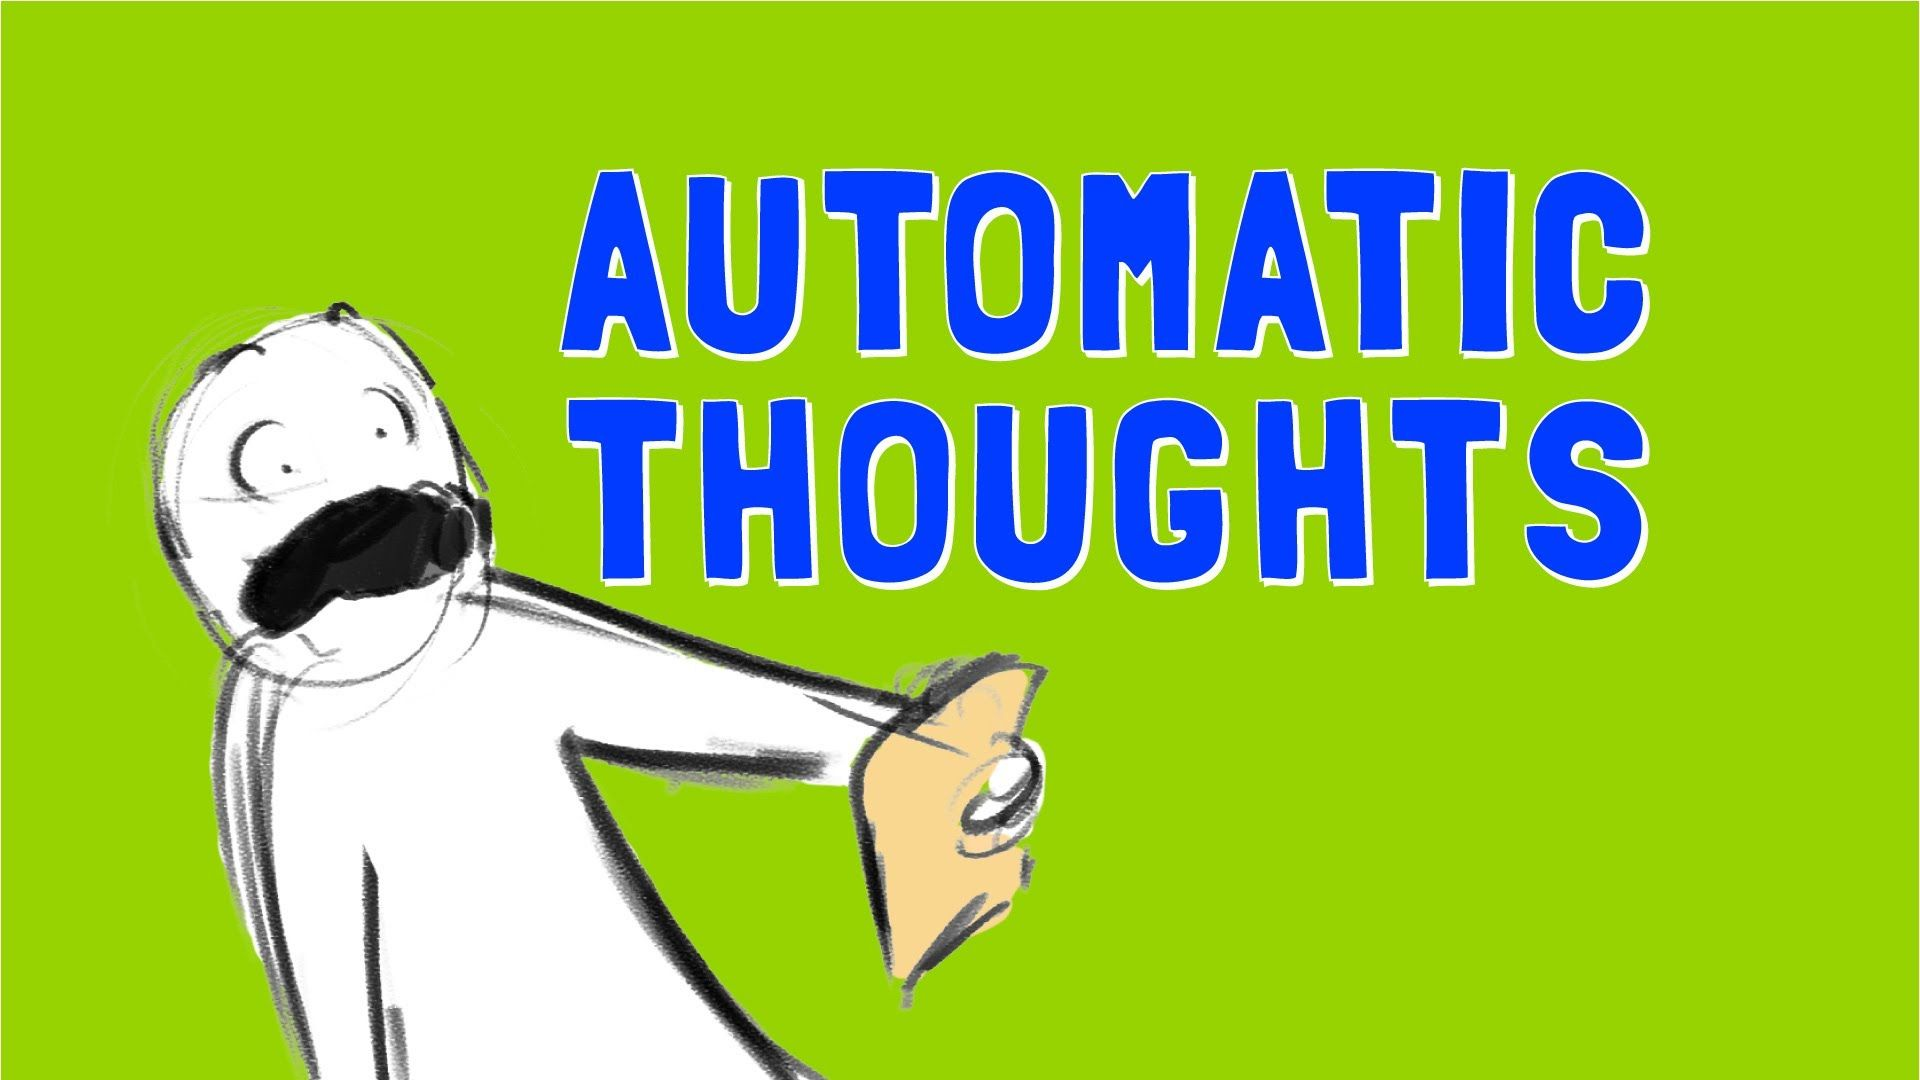 How To Deal With Automatic Thoughts By Wellcast